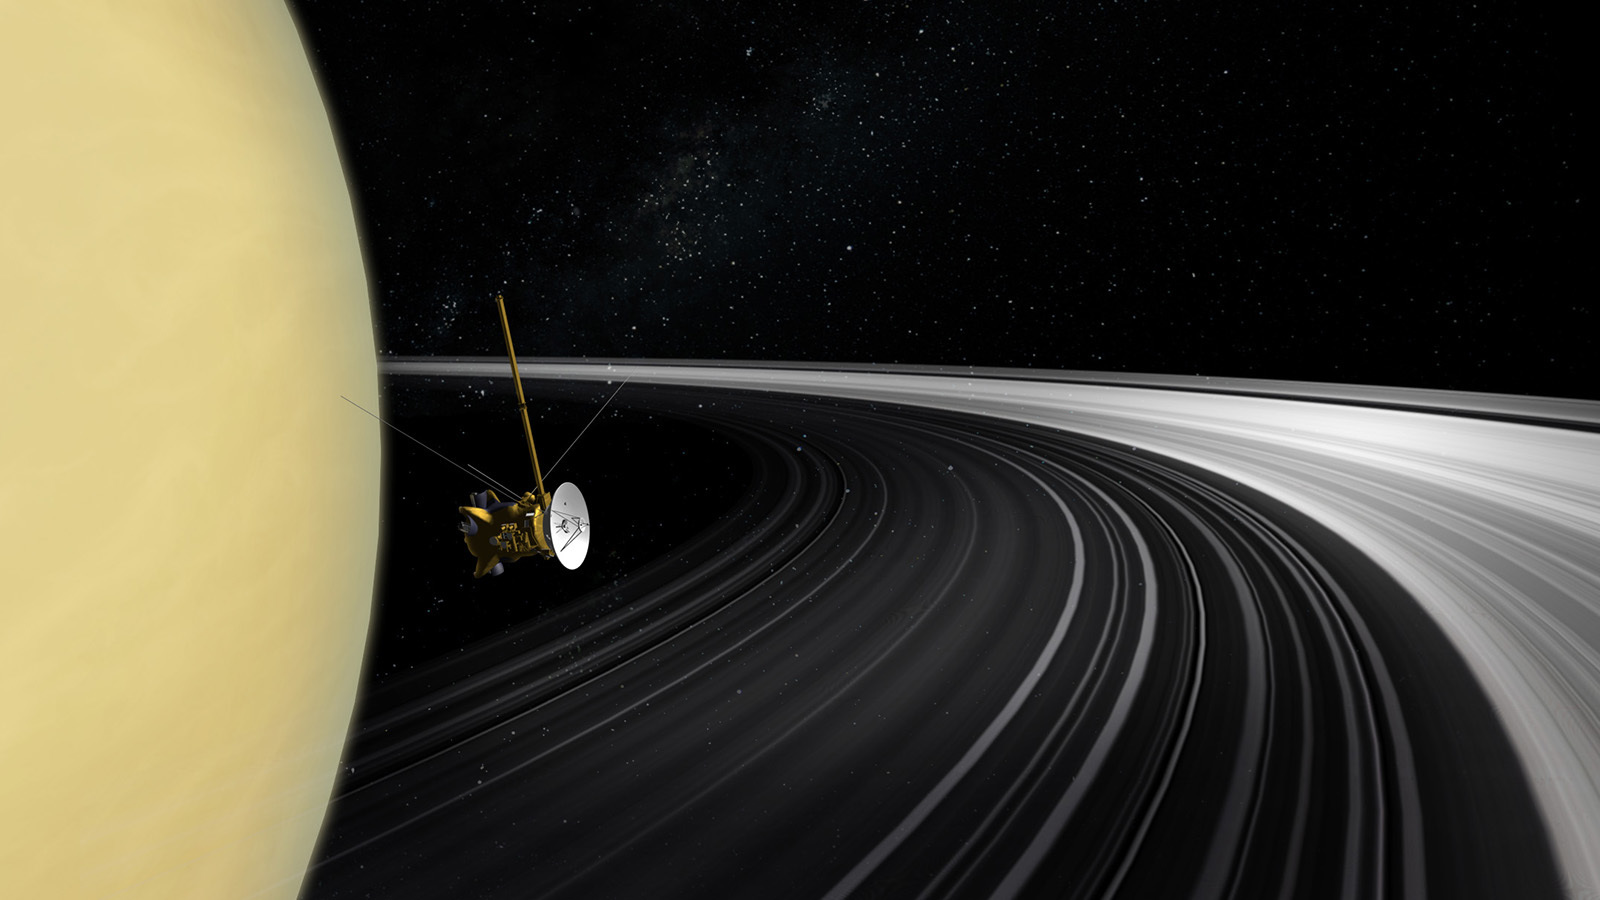 Illustration of Cassini at Saturn